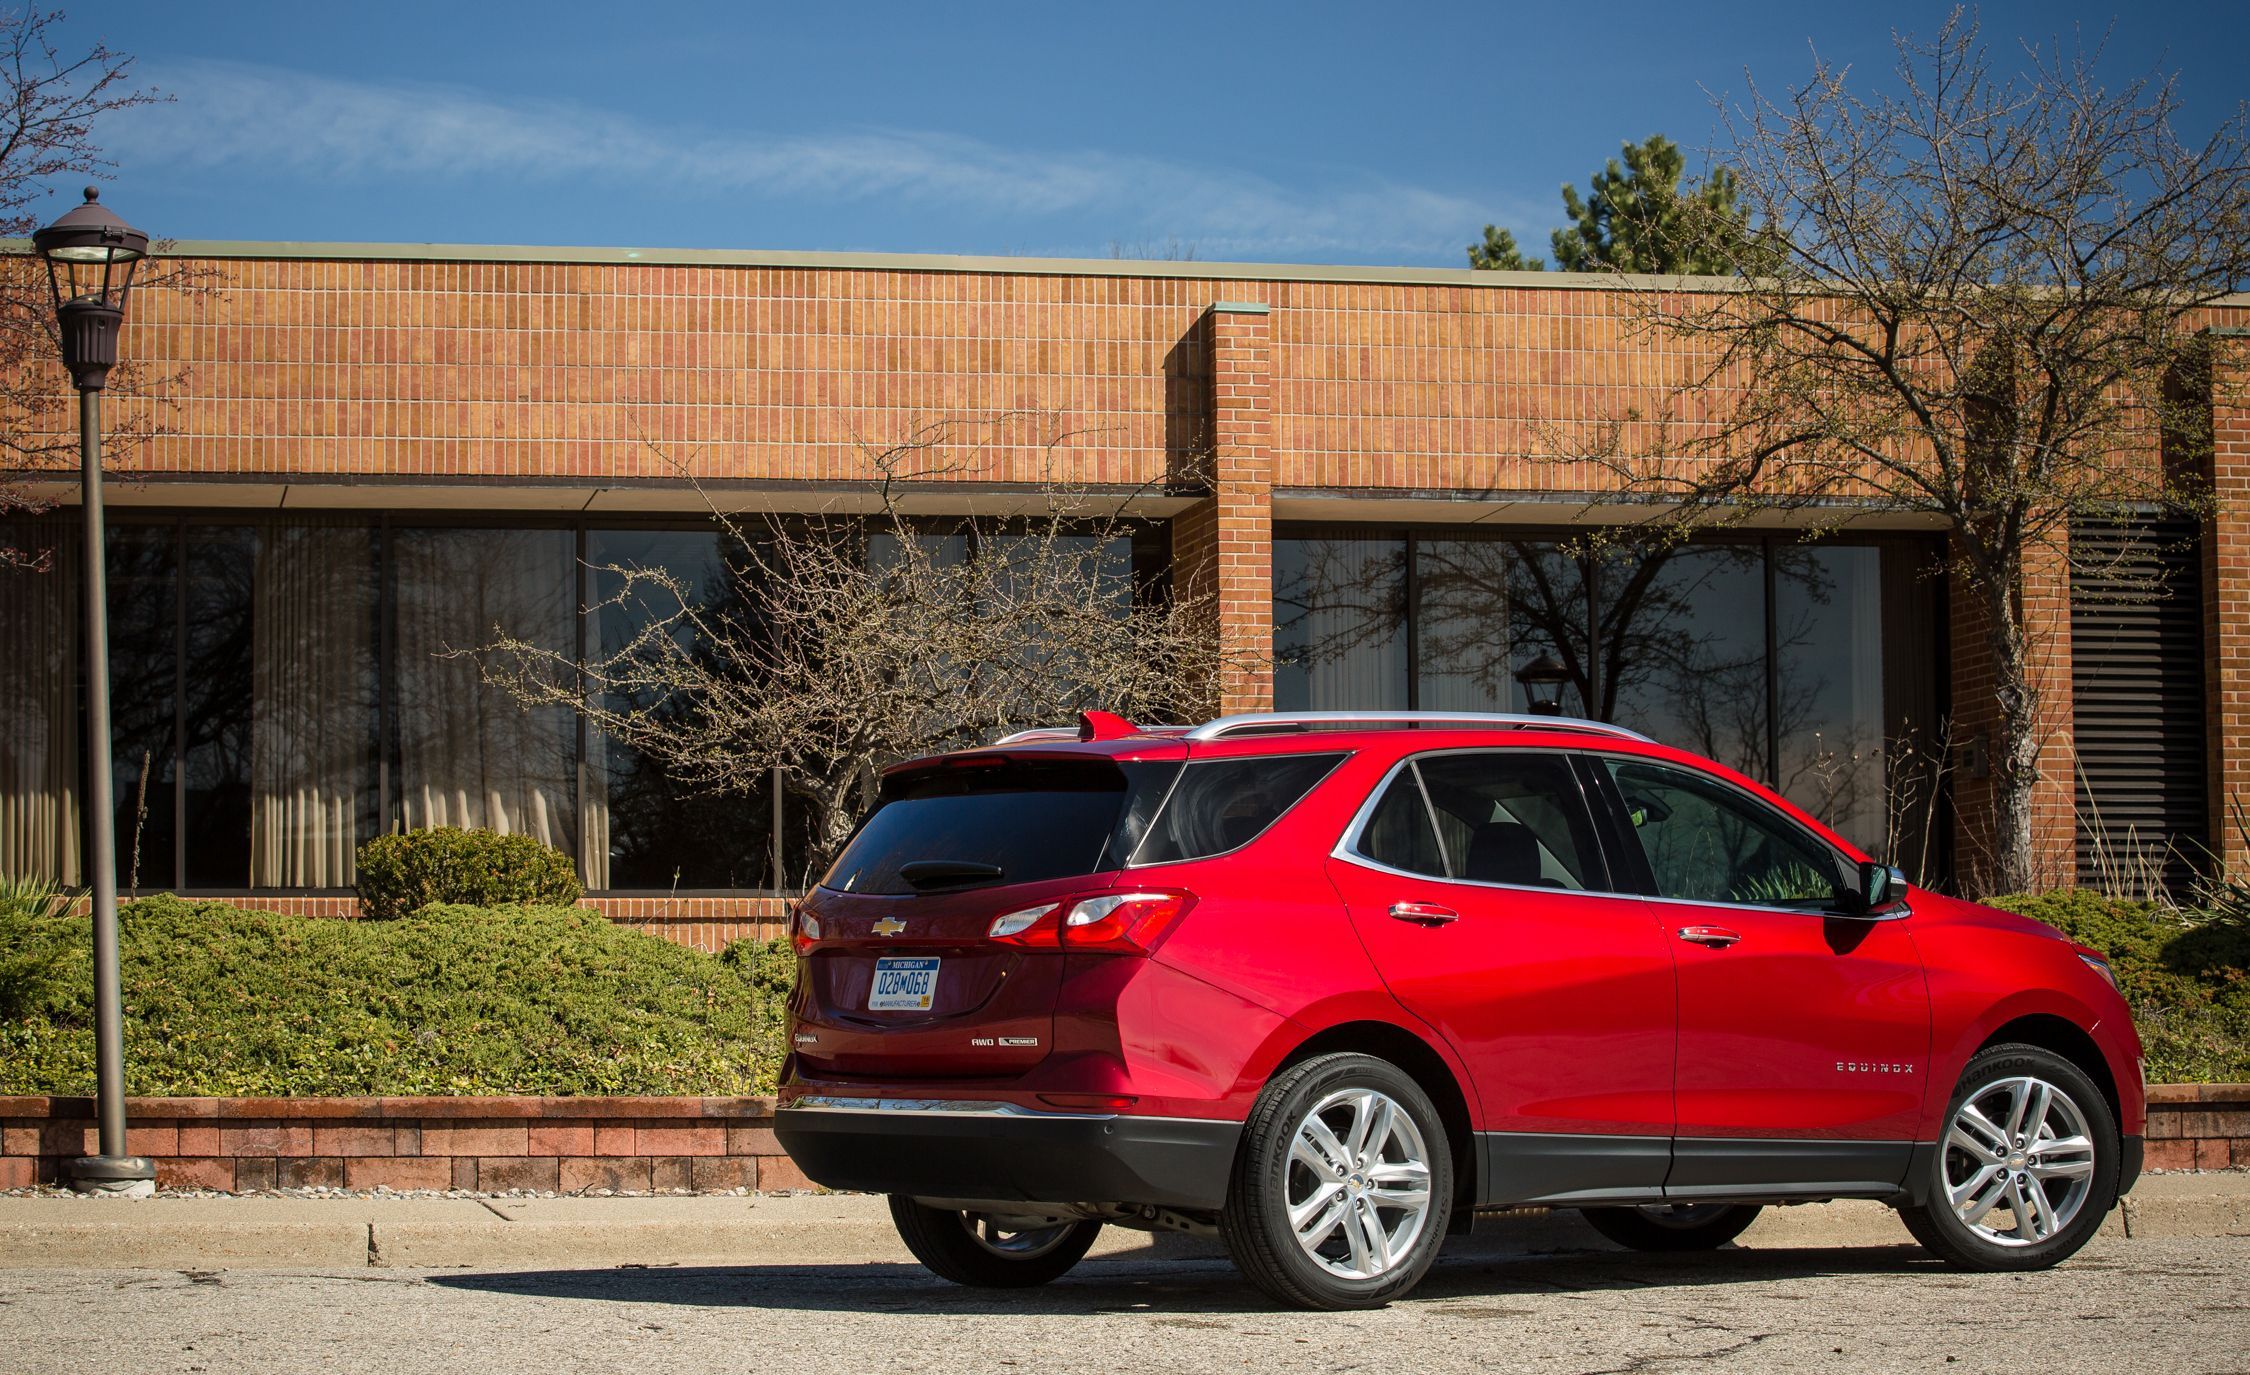 2018 chevrolet equinox awd test review car and driver Chevy Equinox Trailer Hitch Receiver reviews may 2017